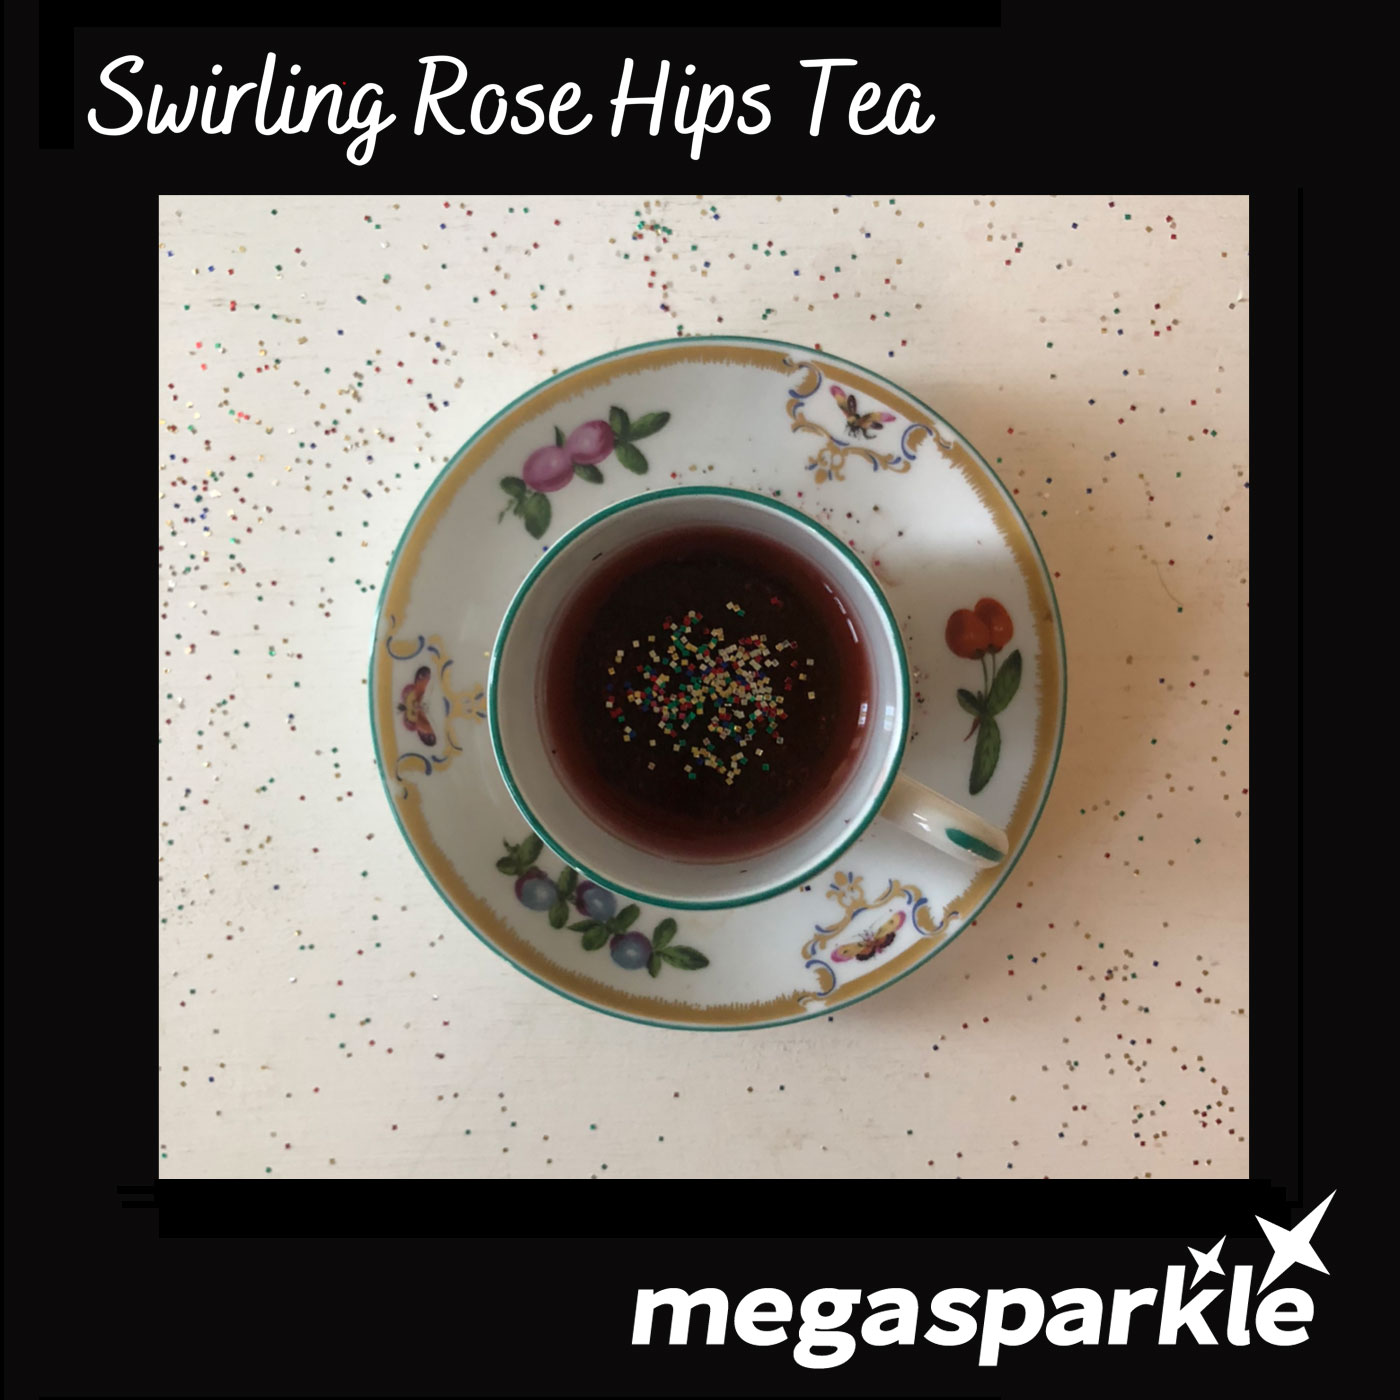 Swirling Rose Hips Tea